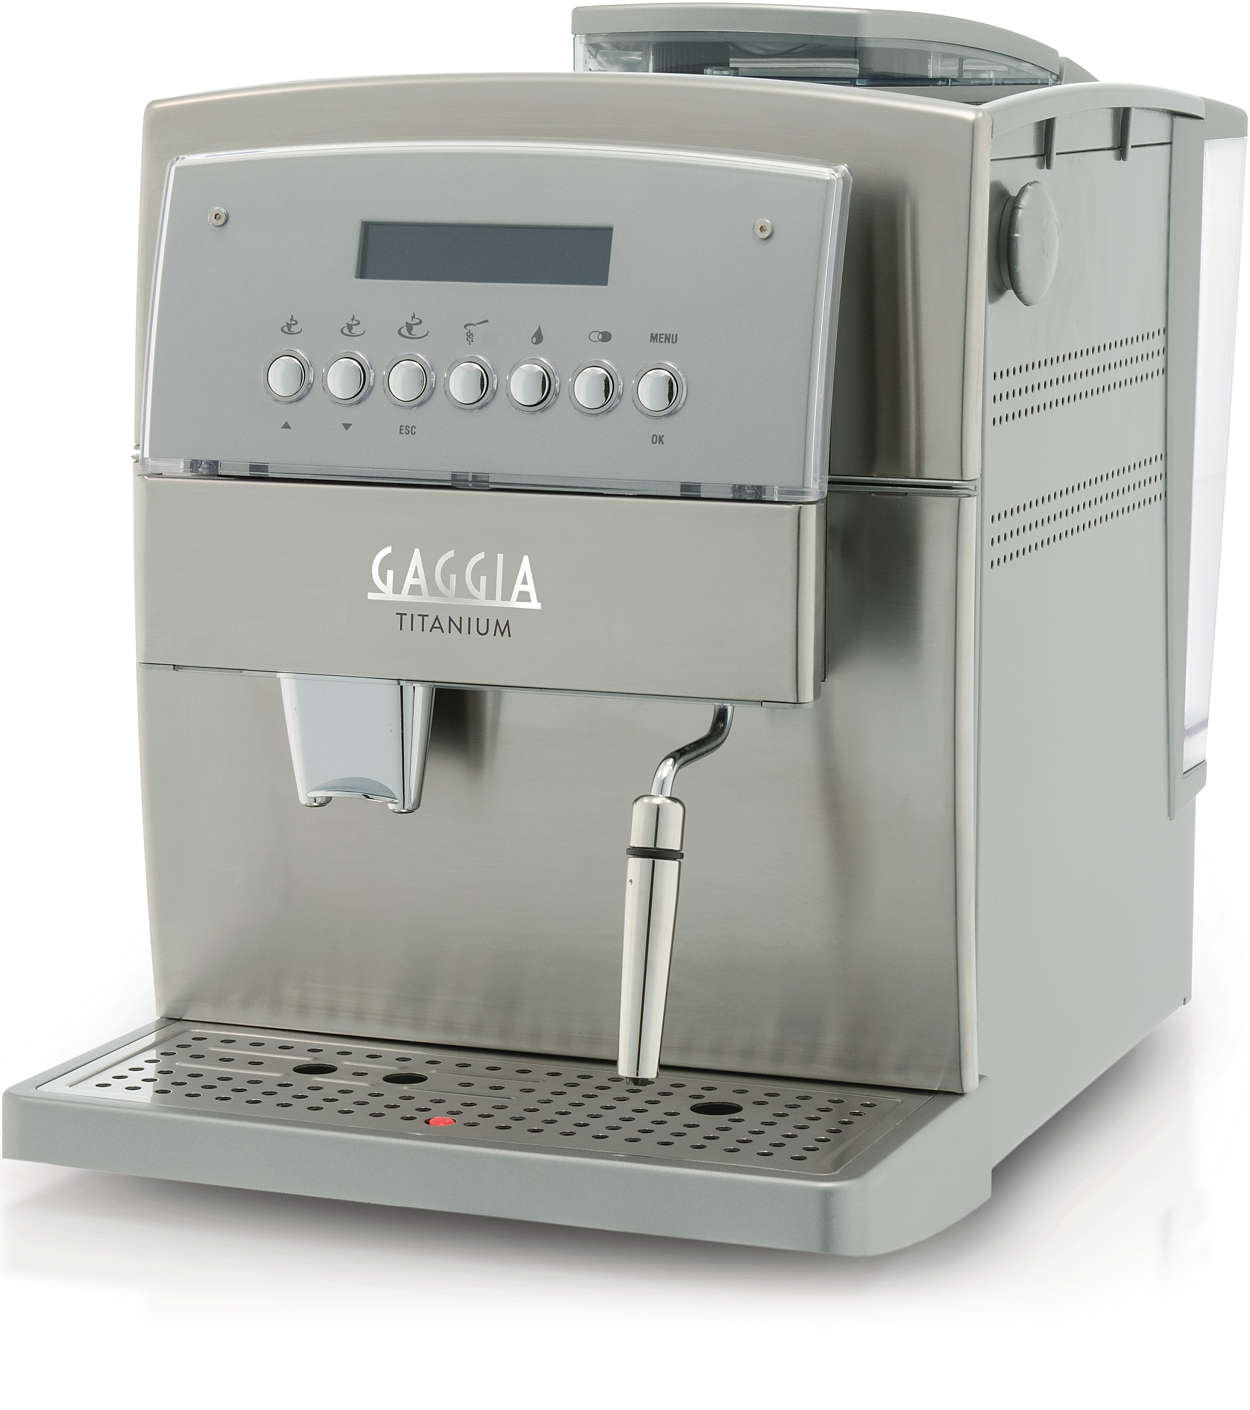 Experience the Gaggia Titanium espresso machine